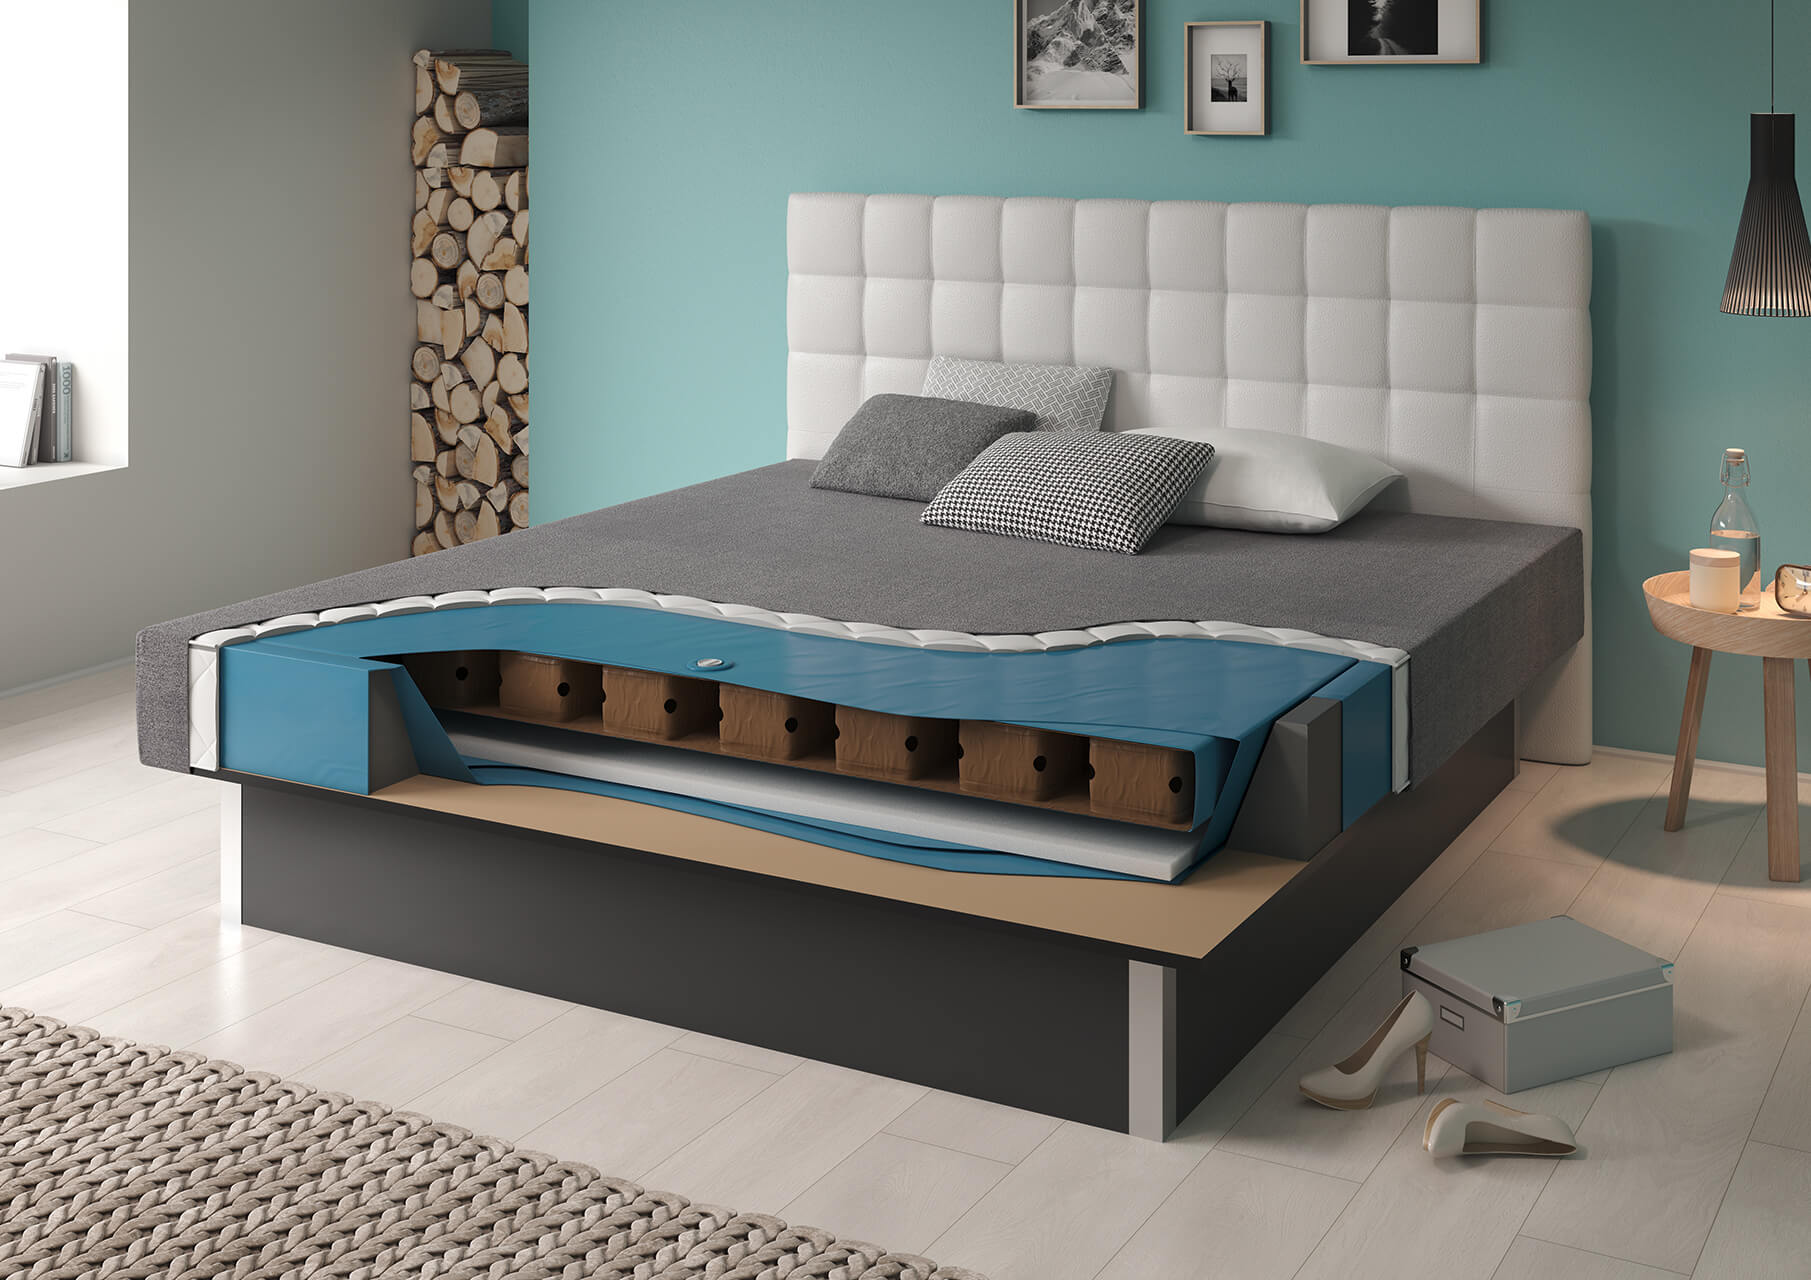 wasserbett flexx mono ein leben lang flexibel stufenlos einstellbar suma wasserbetten. Black Bedroom Furniture Sets. Home Design Ideas